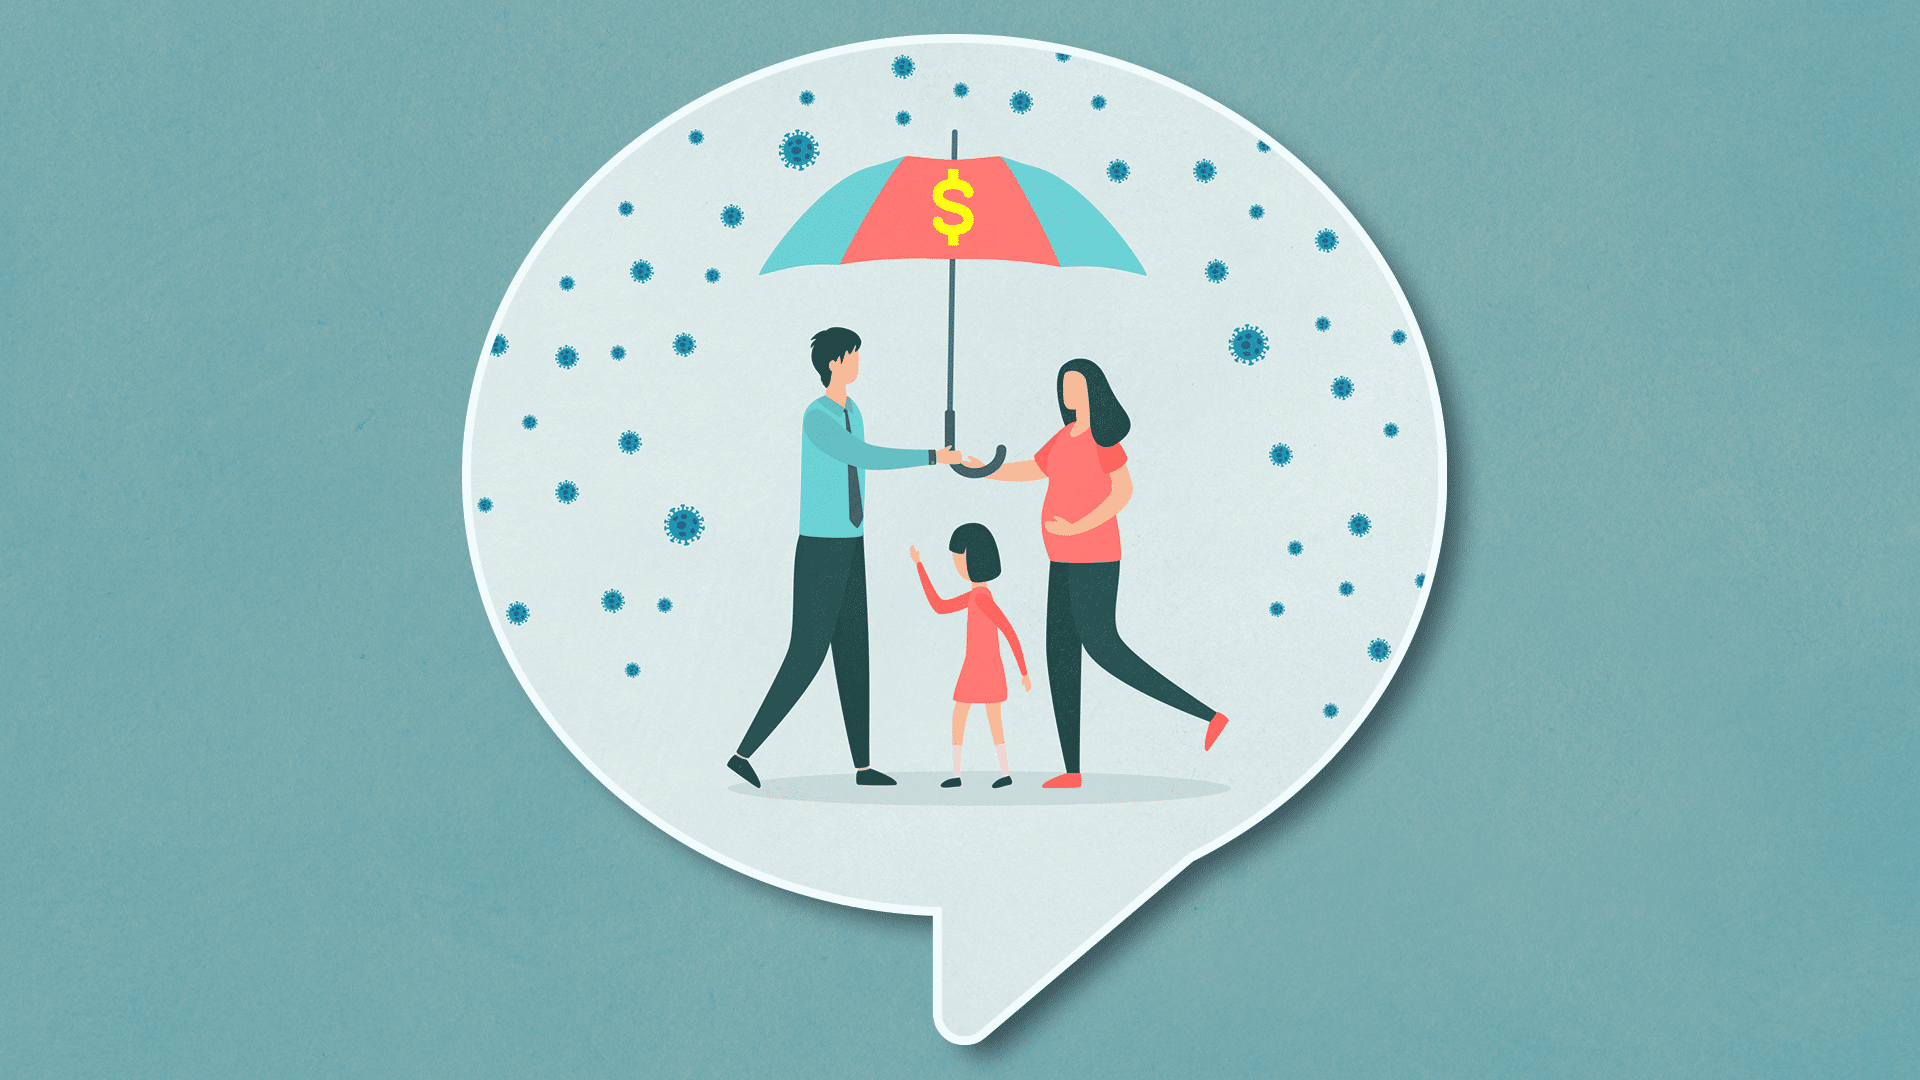 illustration of family holding umbrella with a dollar sign